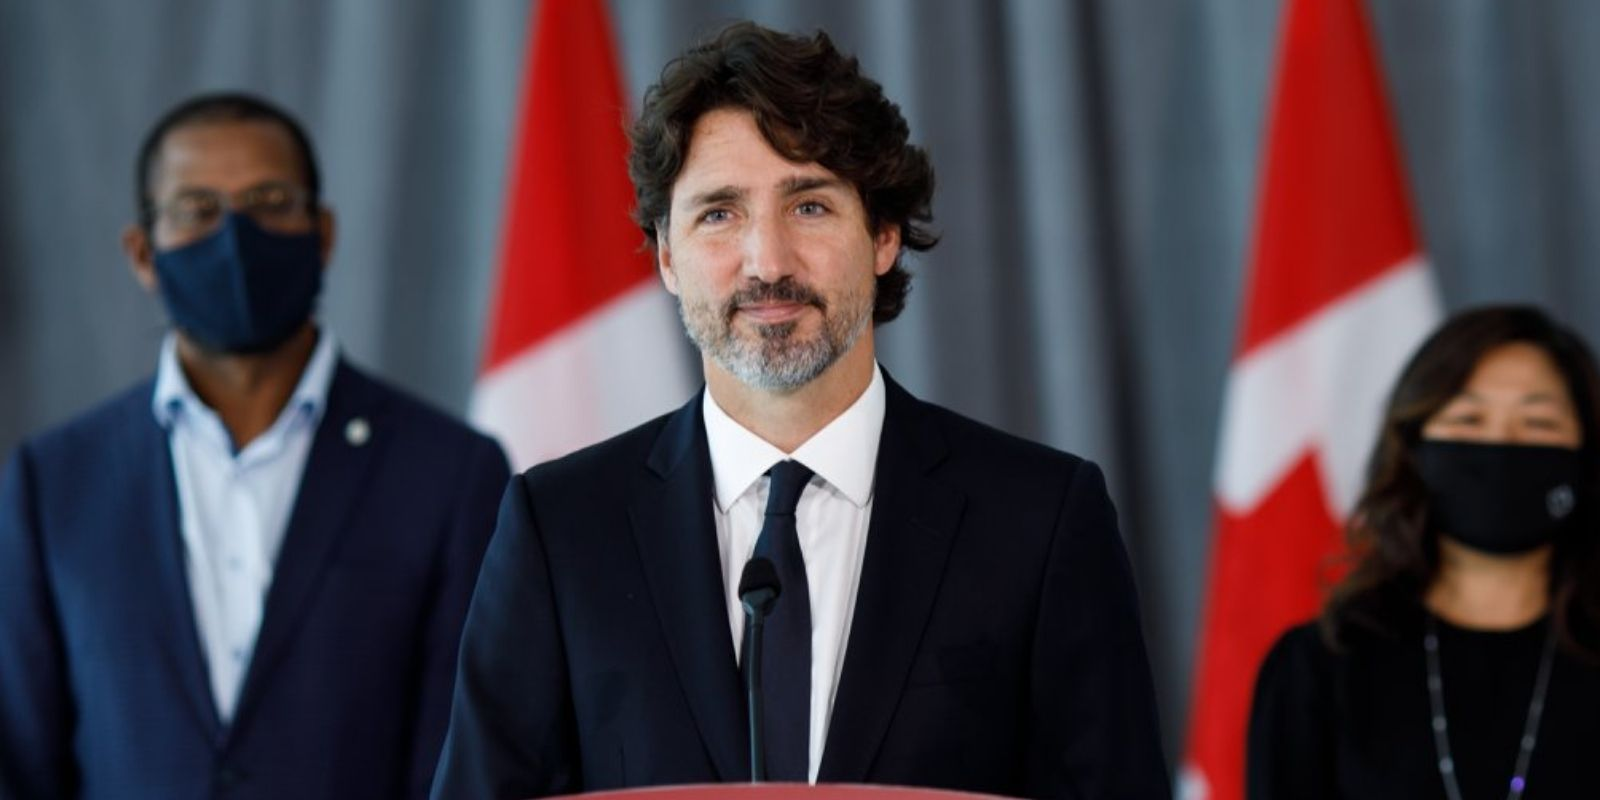 Trudeau's department teaches 'only white people can be racist'